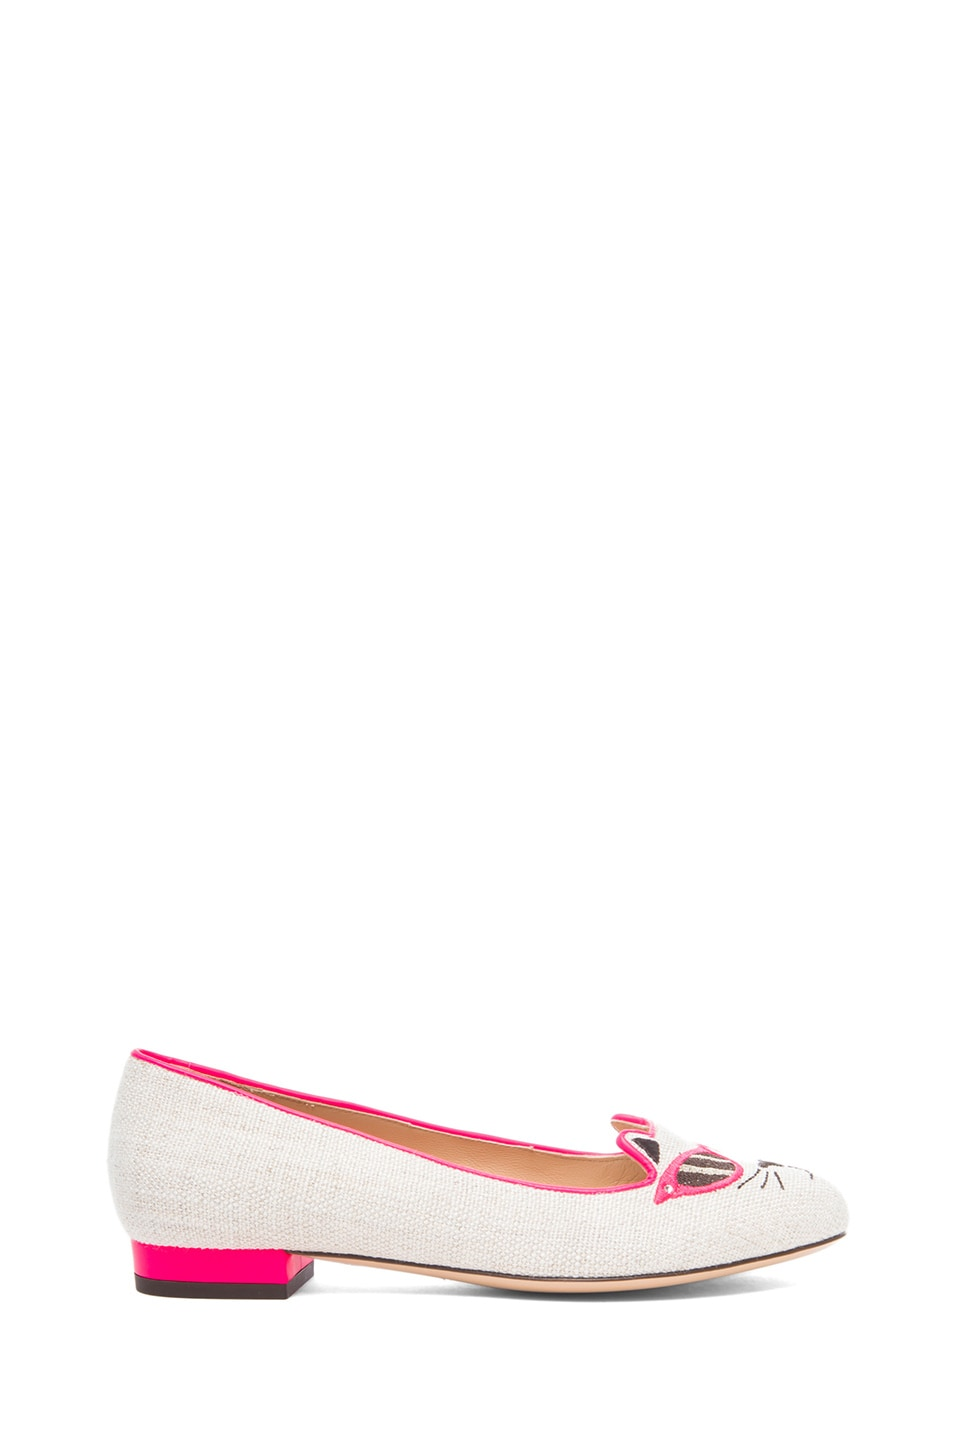 Image 1 of Charlotte Olympia Sunkissed Kitty Flats in Fluorescent Pink